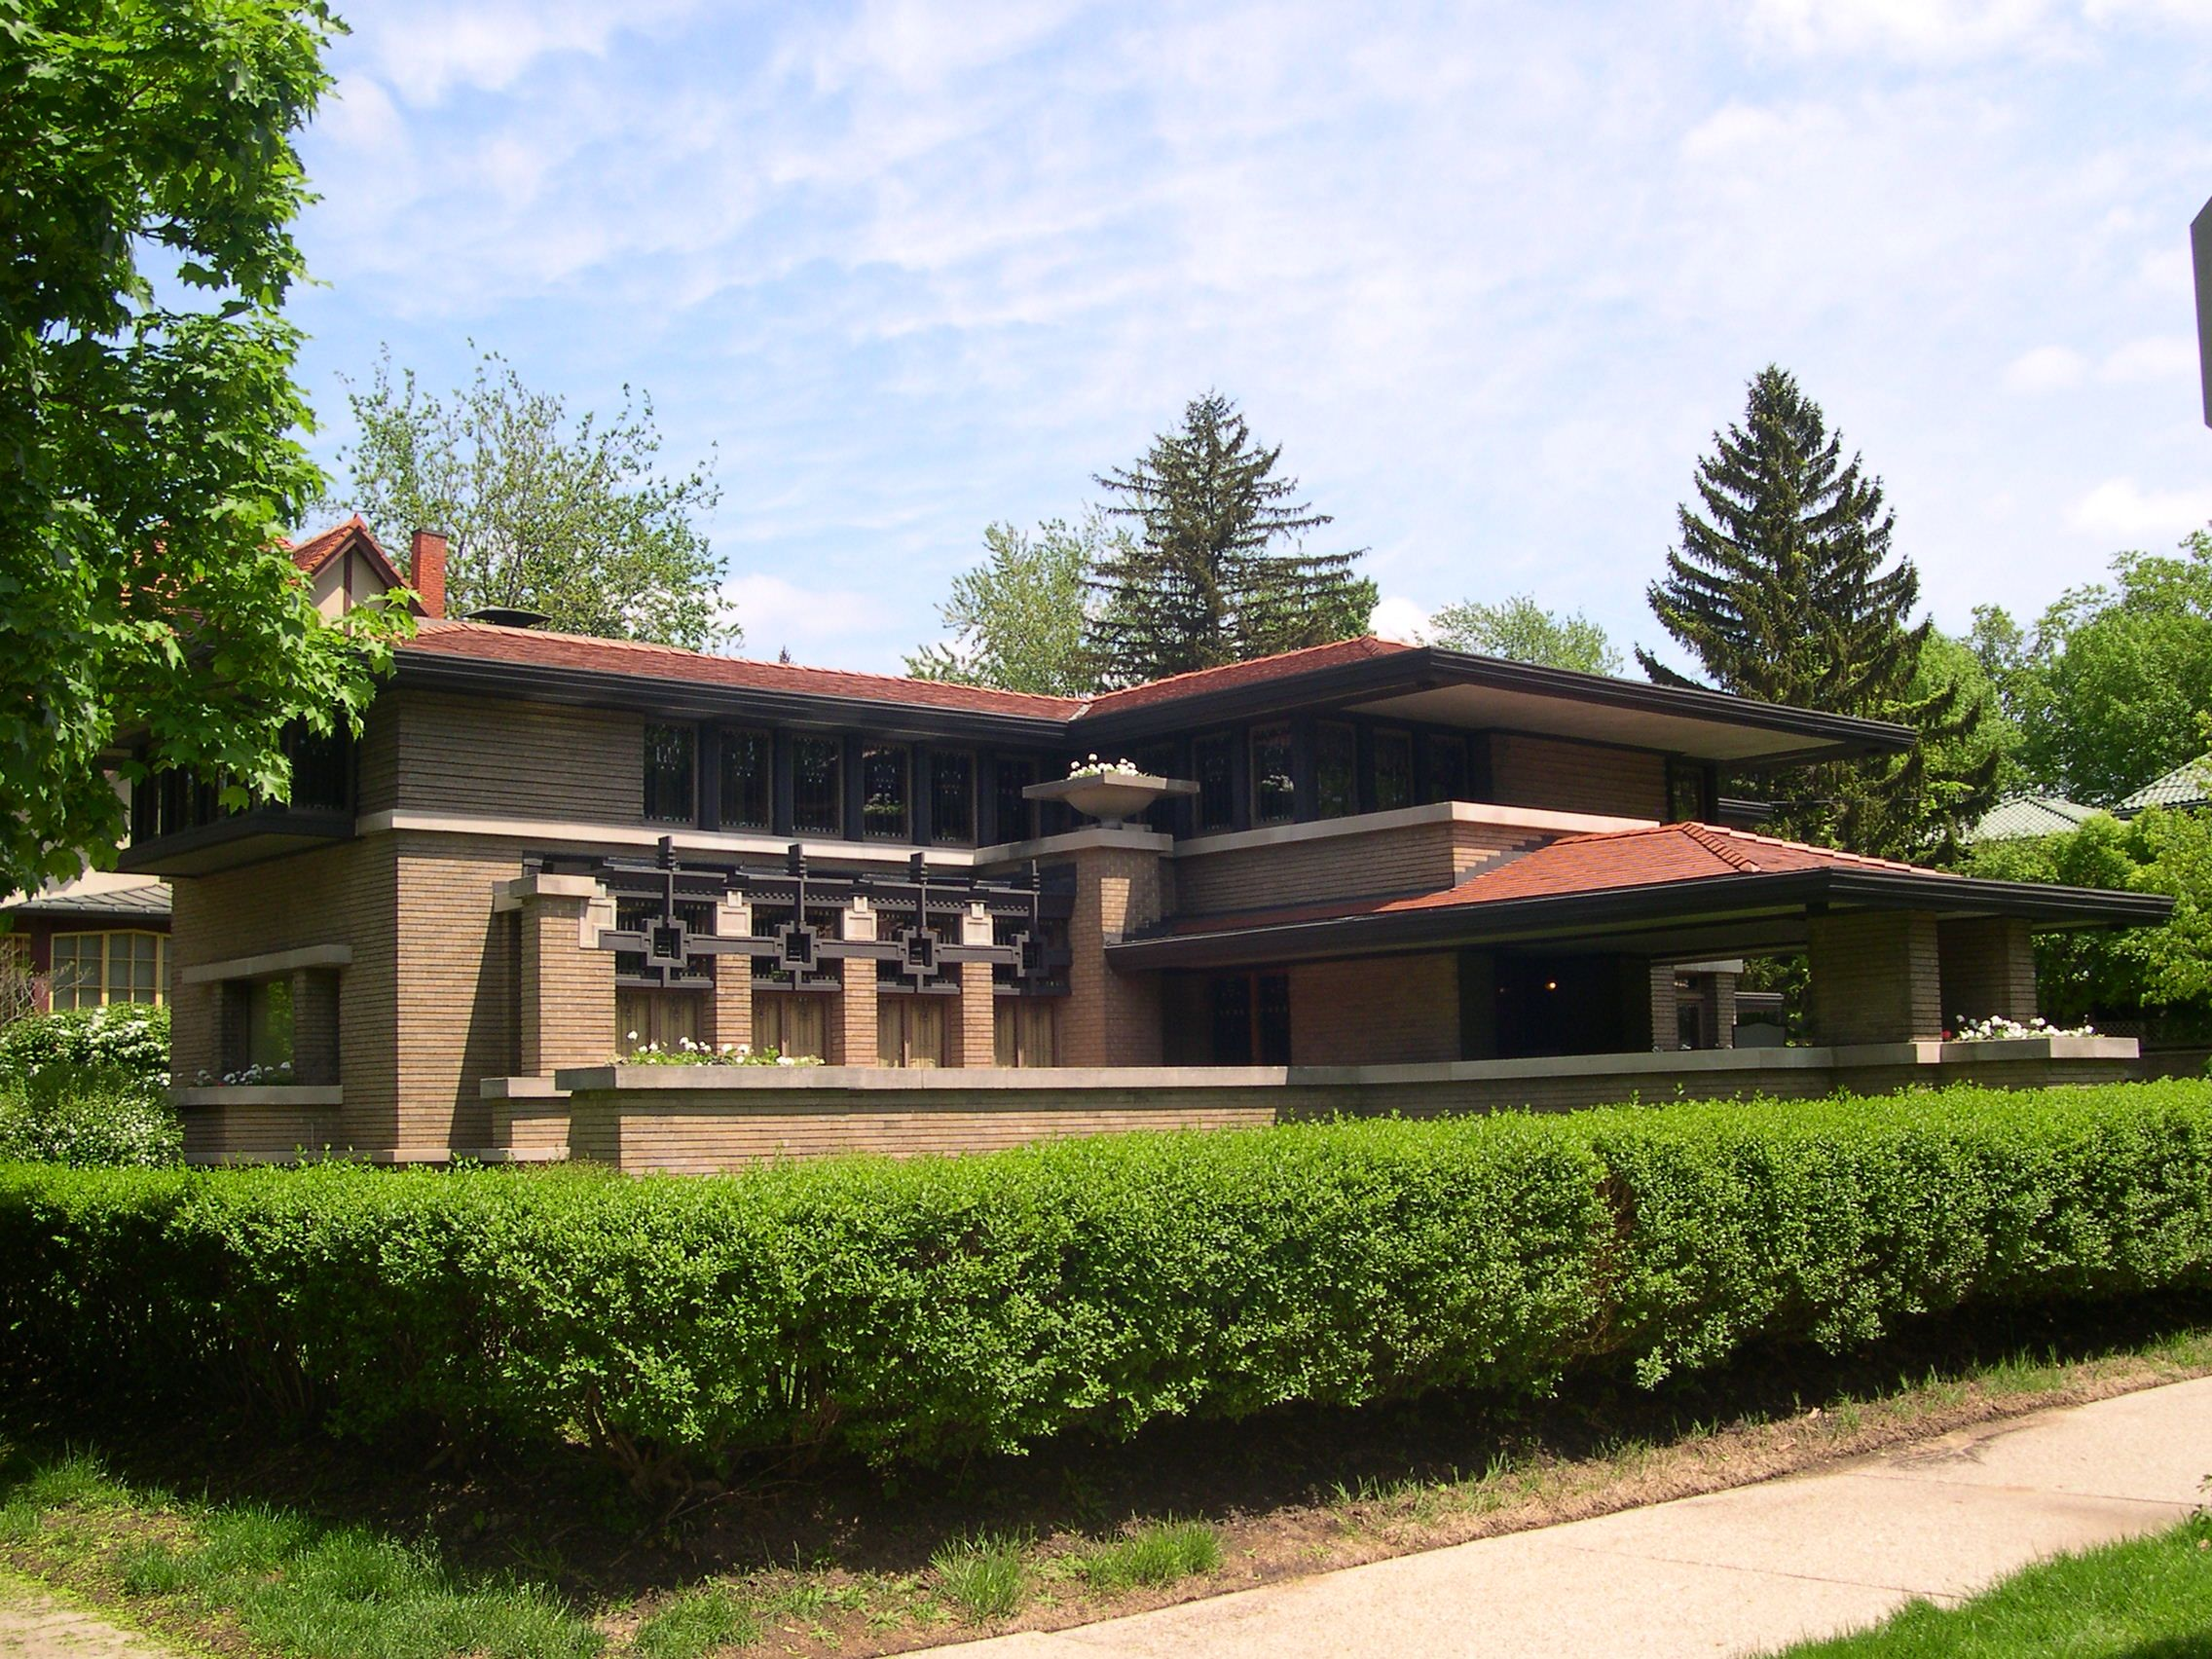 Frank Lloyd Wright Architectural Style frank lloyd wright's effort to transform the spatial organization